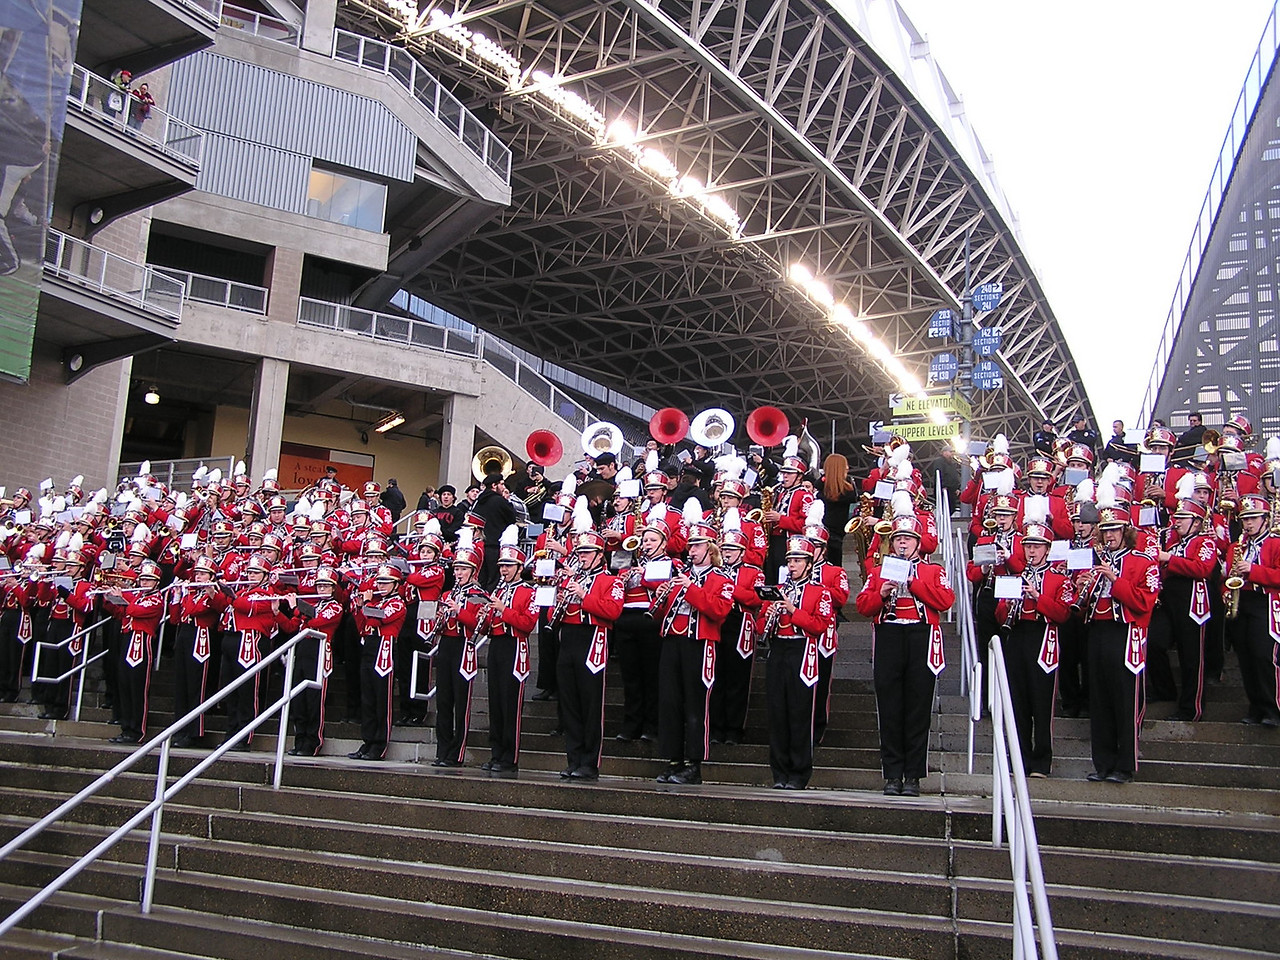 CWU Marching Band in a pre-game band competition.  The Western Washington University Band was standing and playing to the right of the CWU Band.  The bands would alternate playing songs.   Actually, there was no competition.  CWU's band was much better than the smaller WWU band.